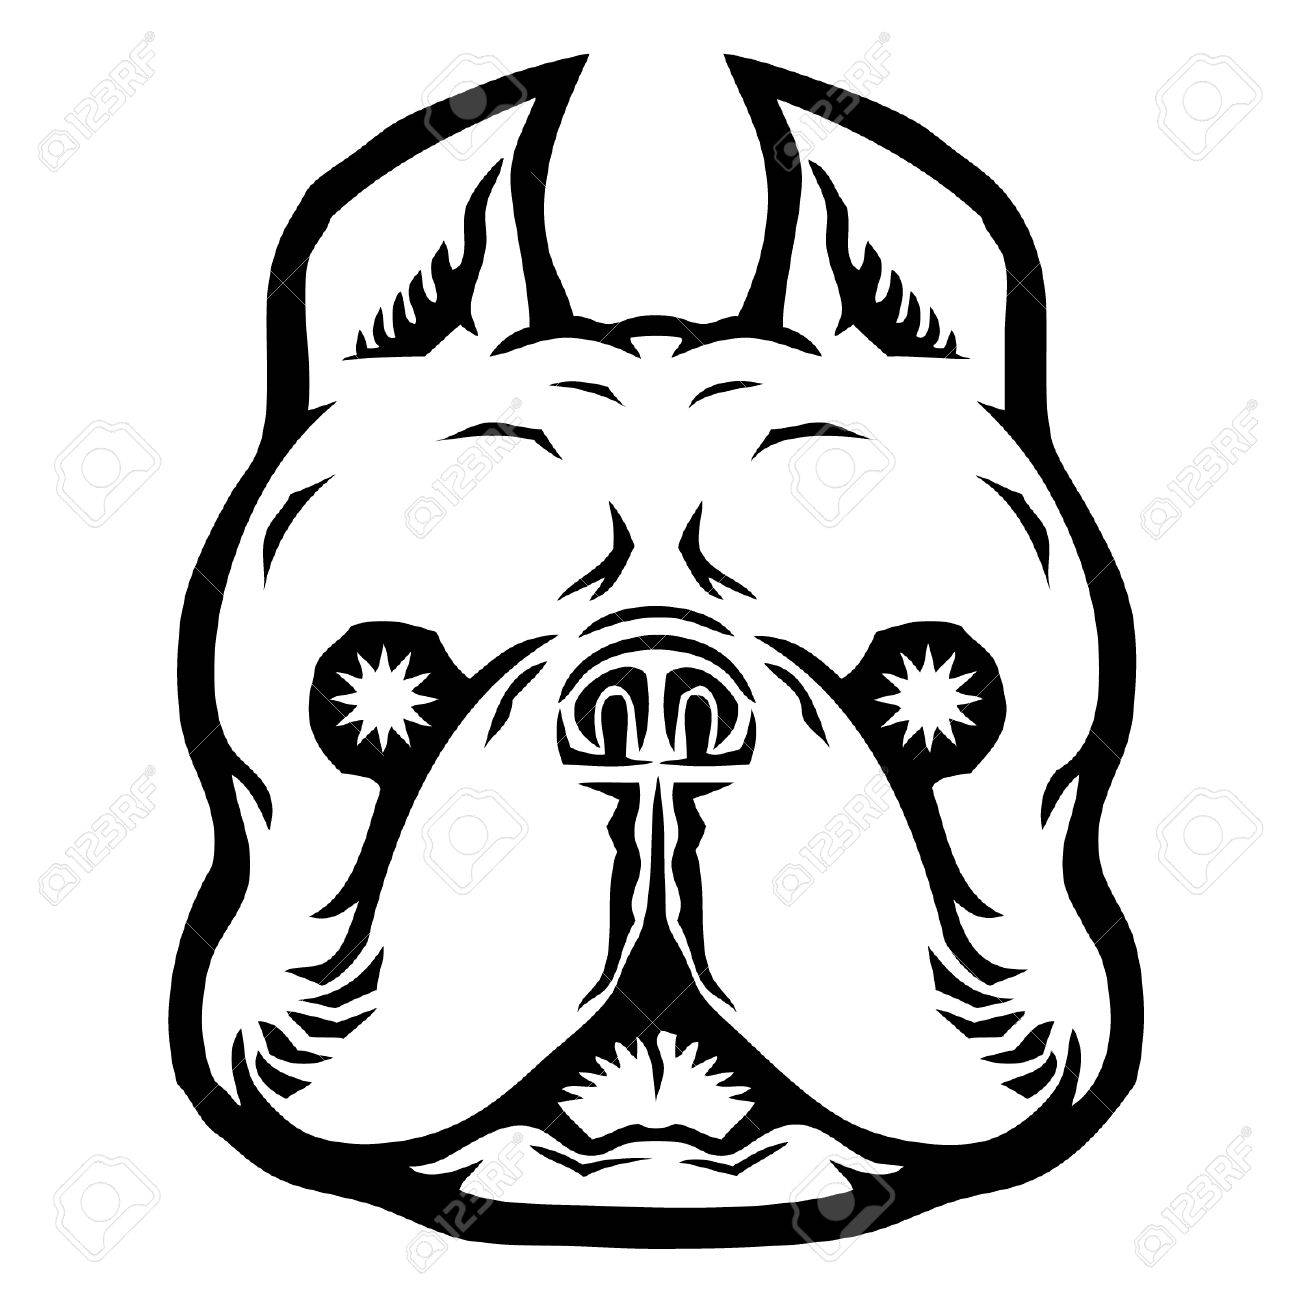 1300x1300 French Bulldog With Evil Eyes Royalty Free Cliparts, Vectors,